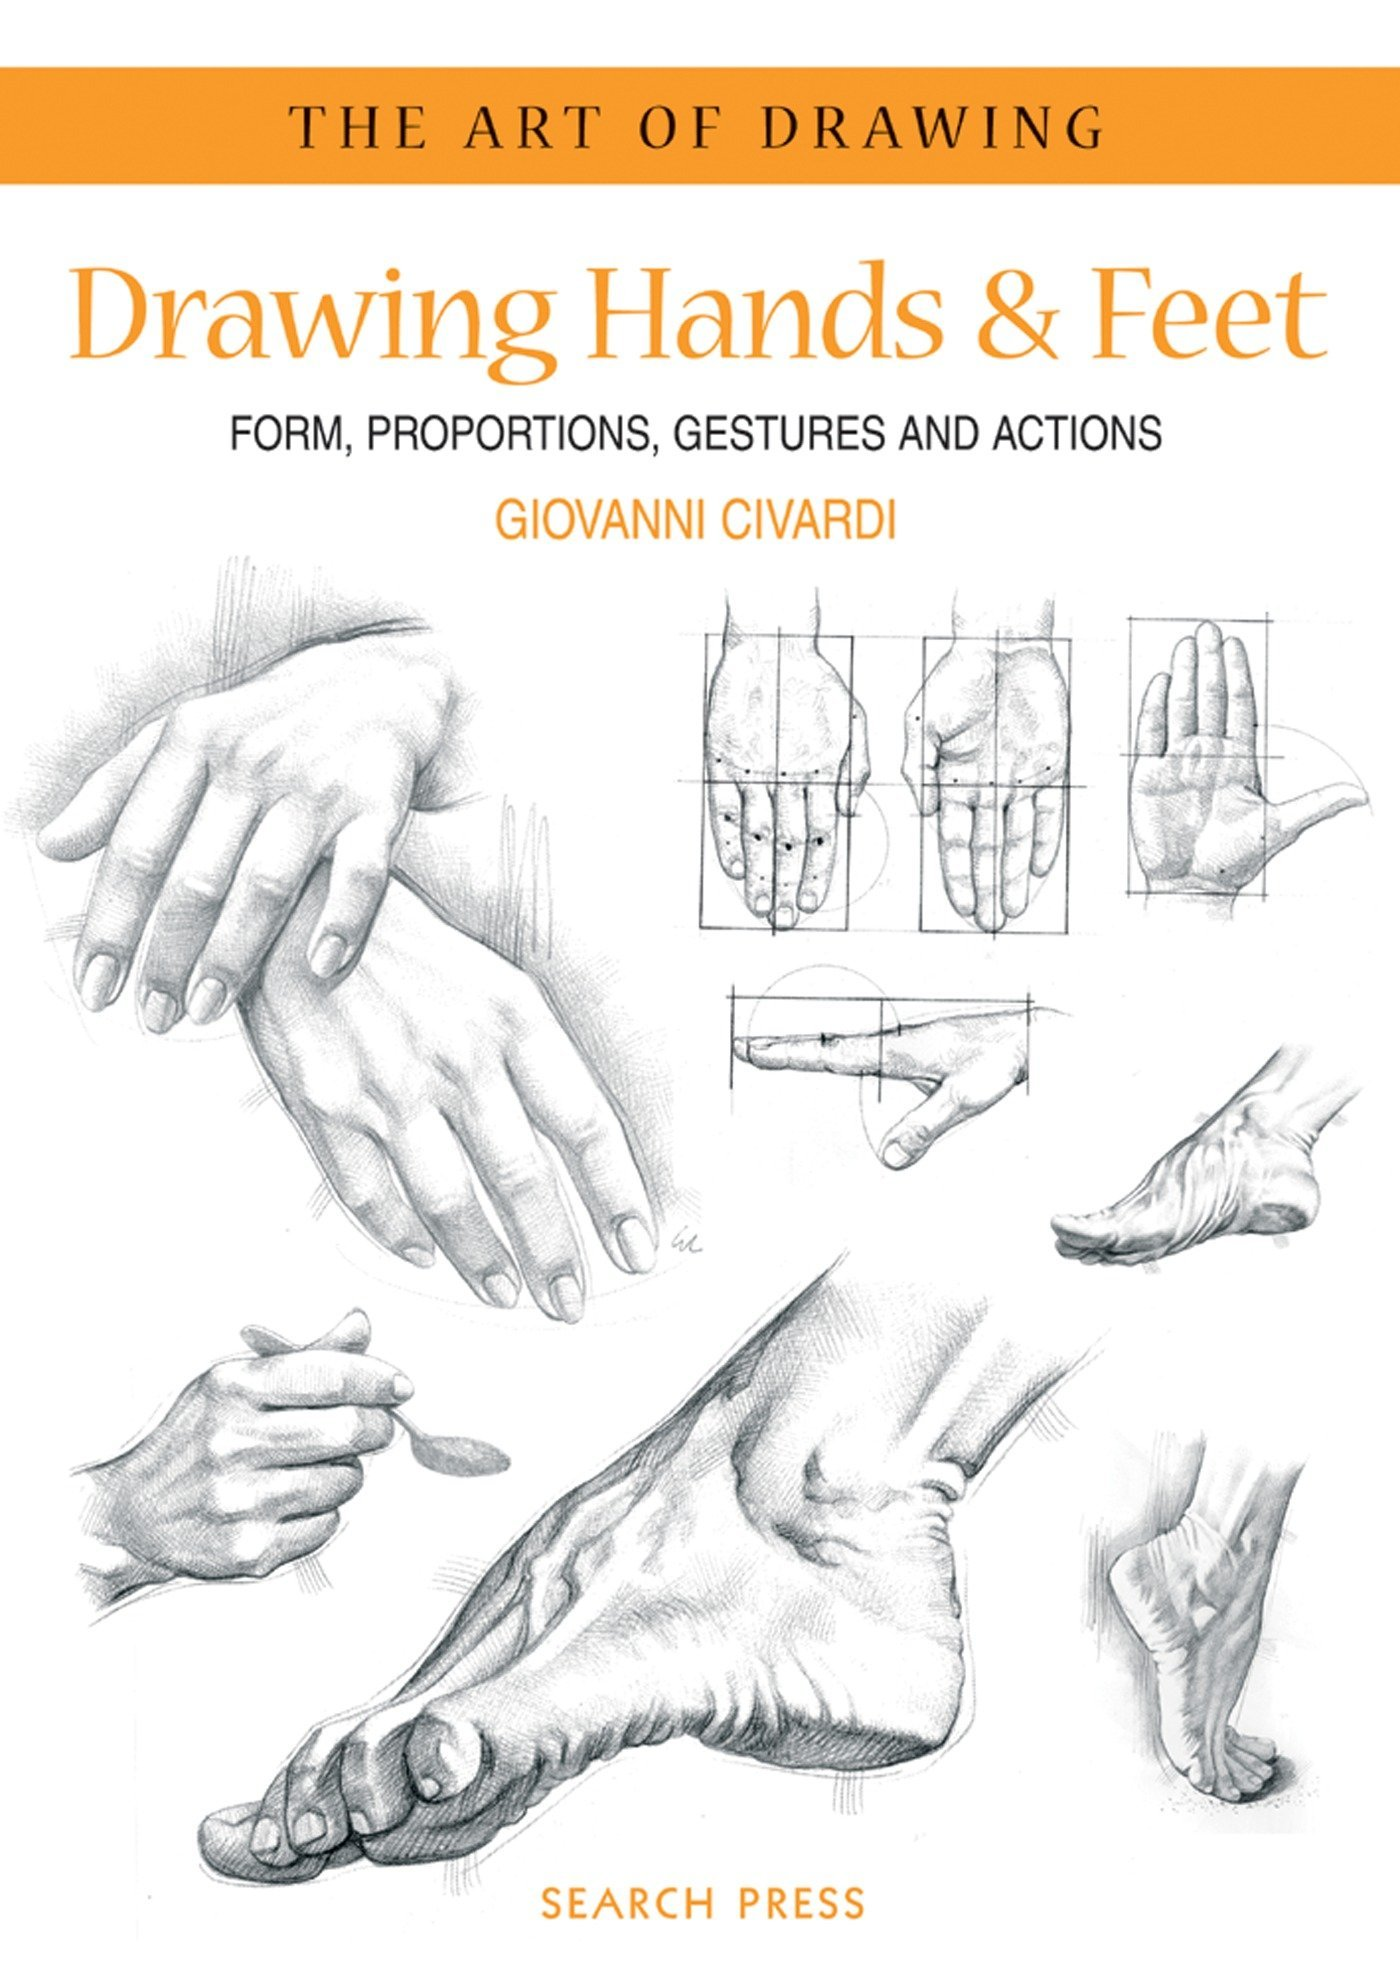 Art of Drawing: Drawing Hands & Feet: Form, Proportions, Gestures